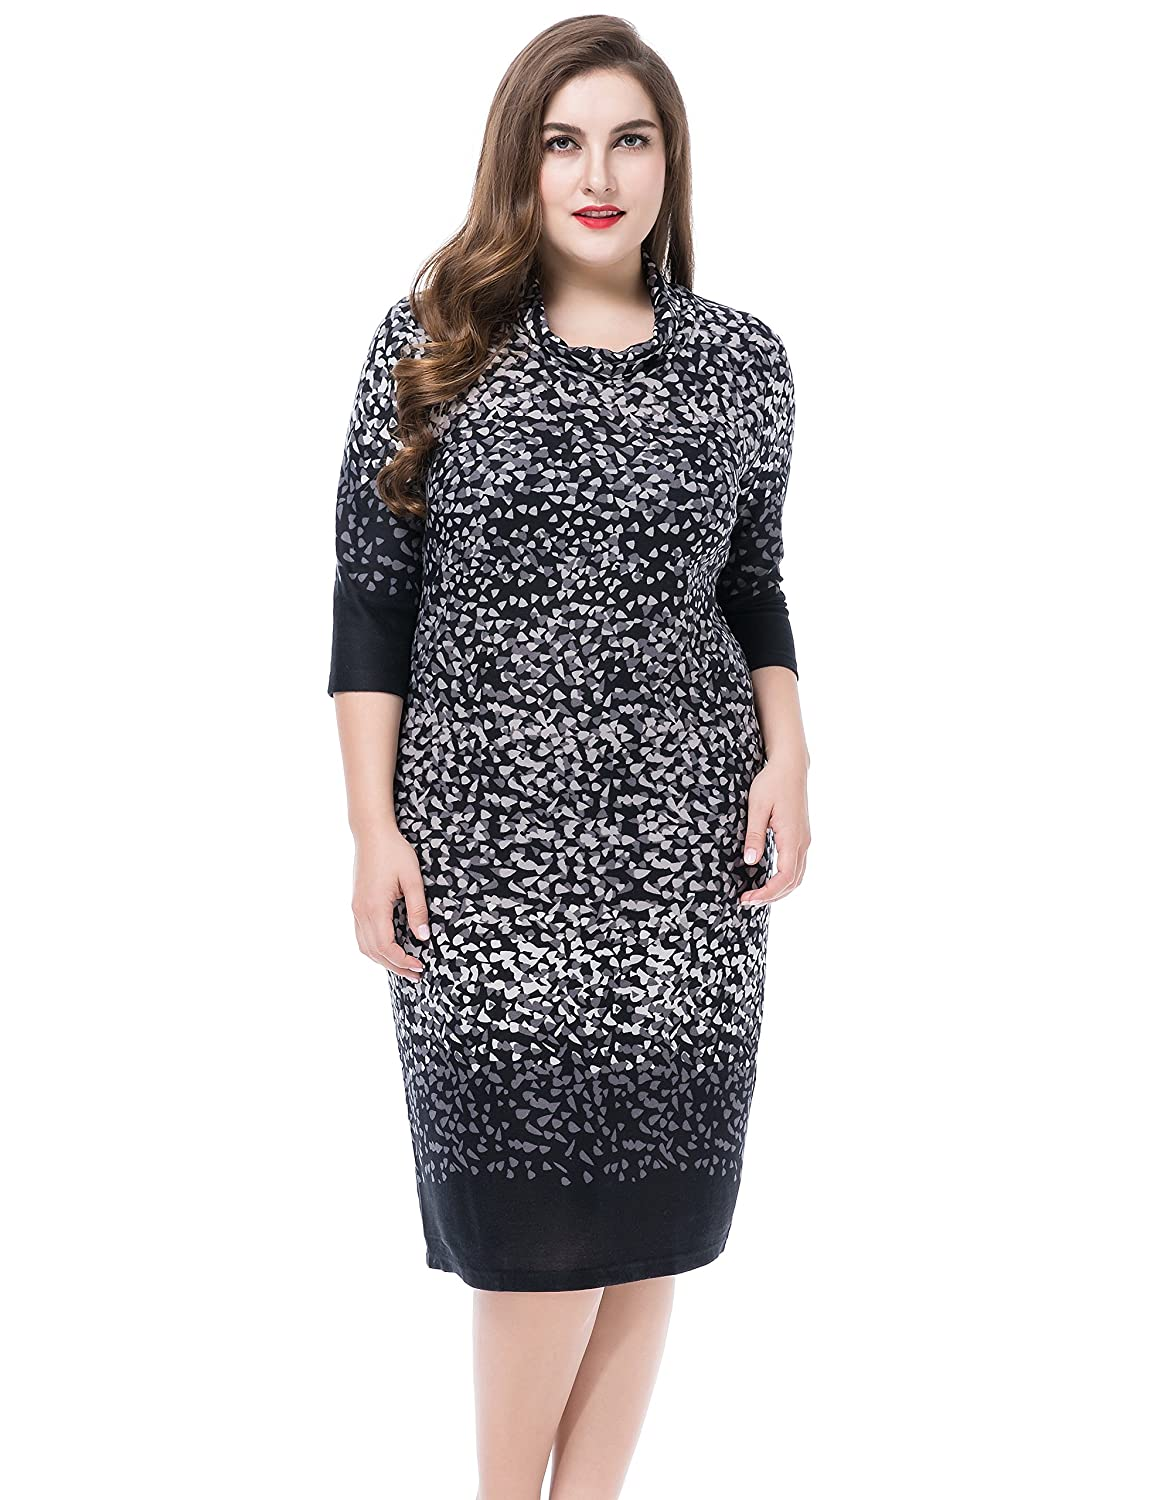 Chicwe Women's Cowl Neck Printed Cashmere Touch Plus Size Dress US12-28 C15C030